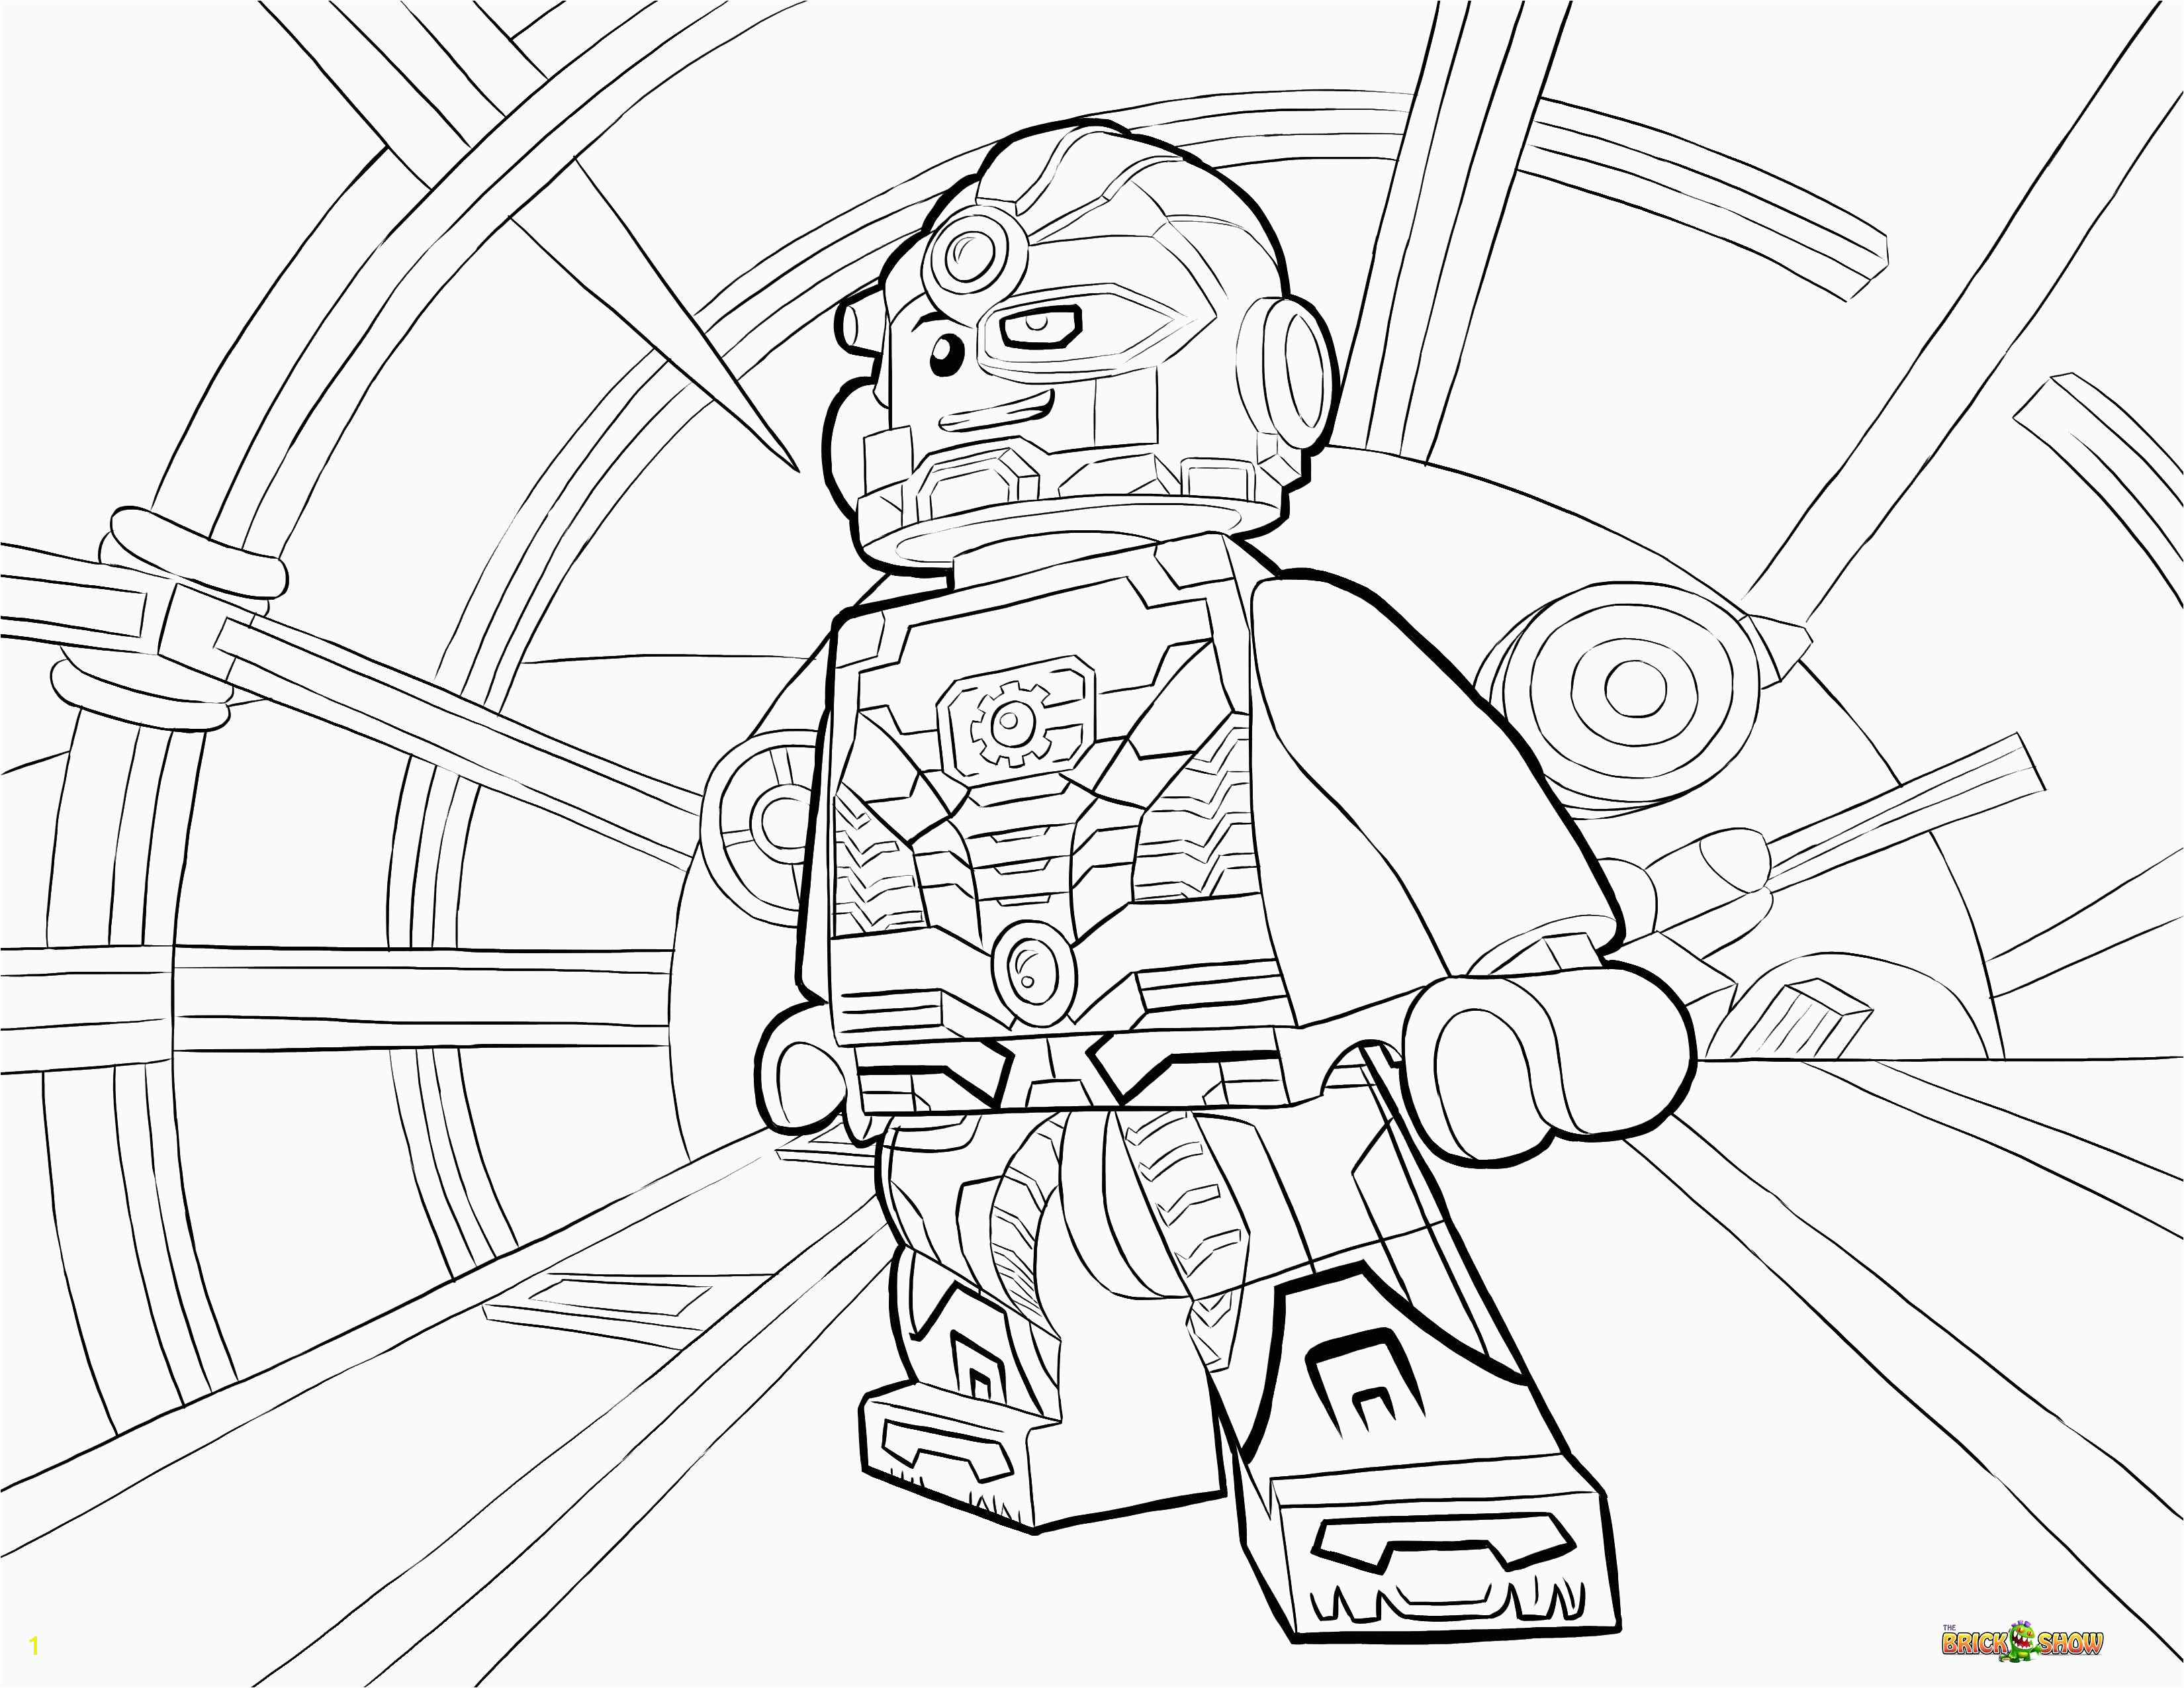 Superhero Coloring Pages Coloring Pages Terrific Superhero Coloring Pages Free Free Lego Superhero Coloring Pages